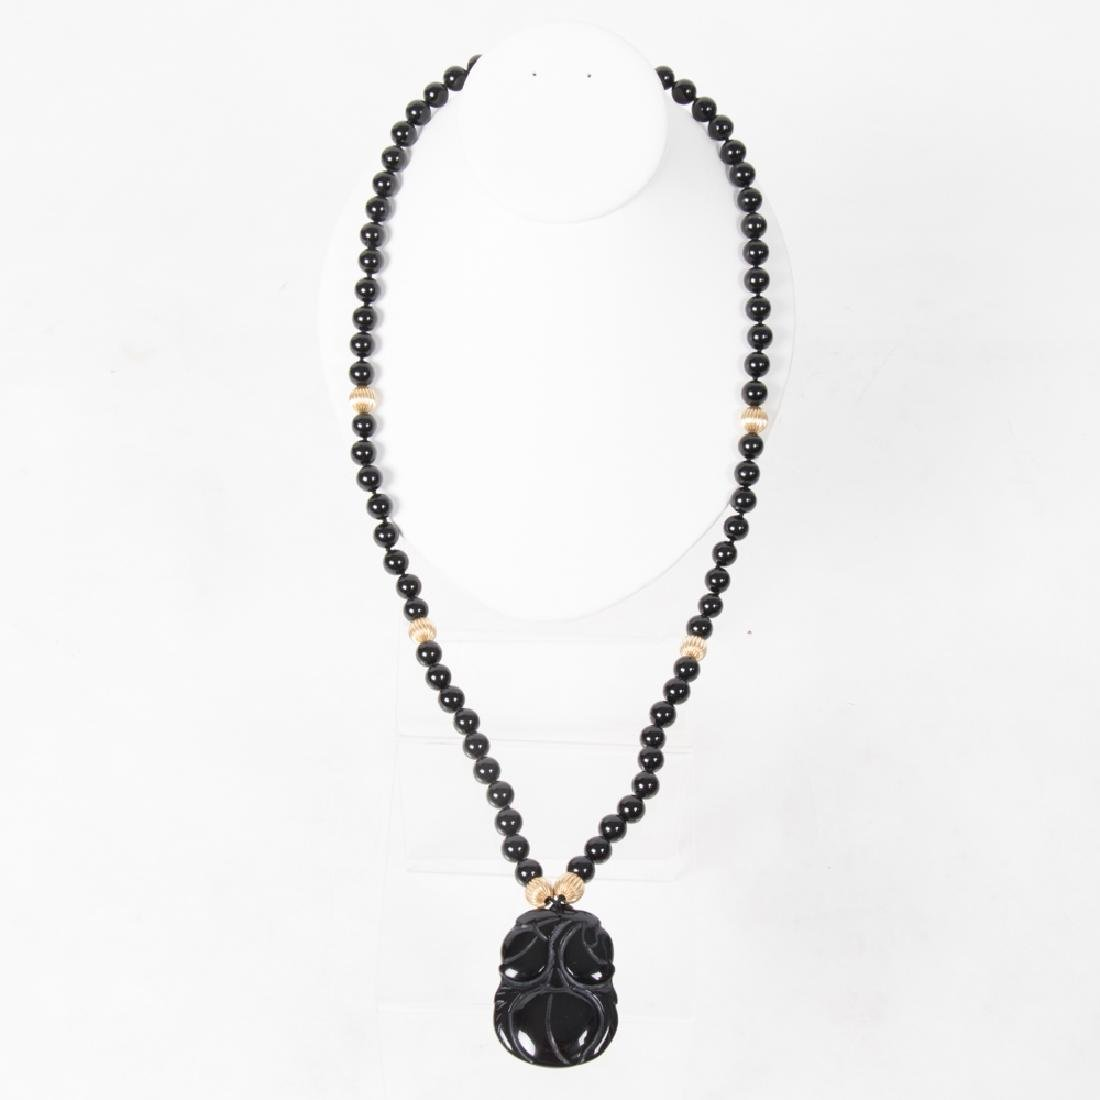 A Carved Obsidian Beaded Necklace,